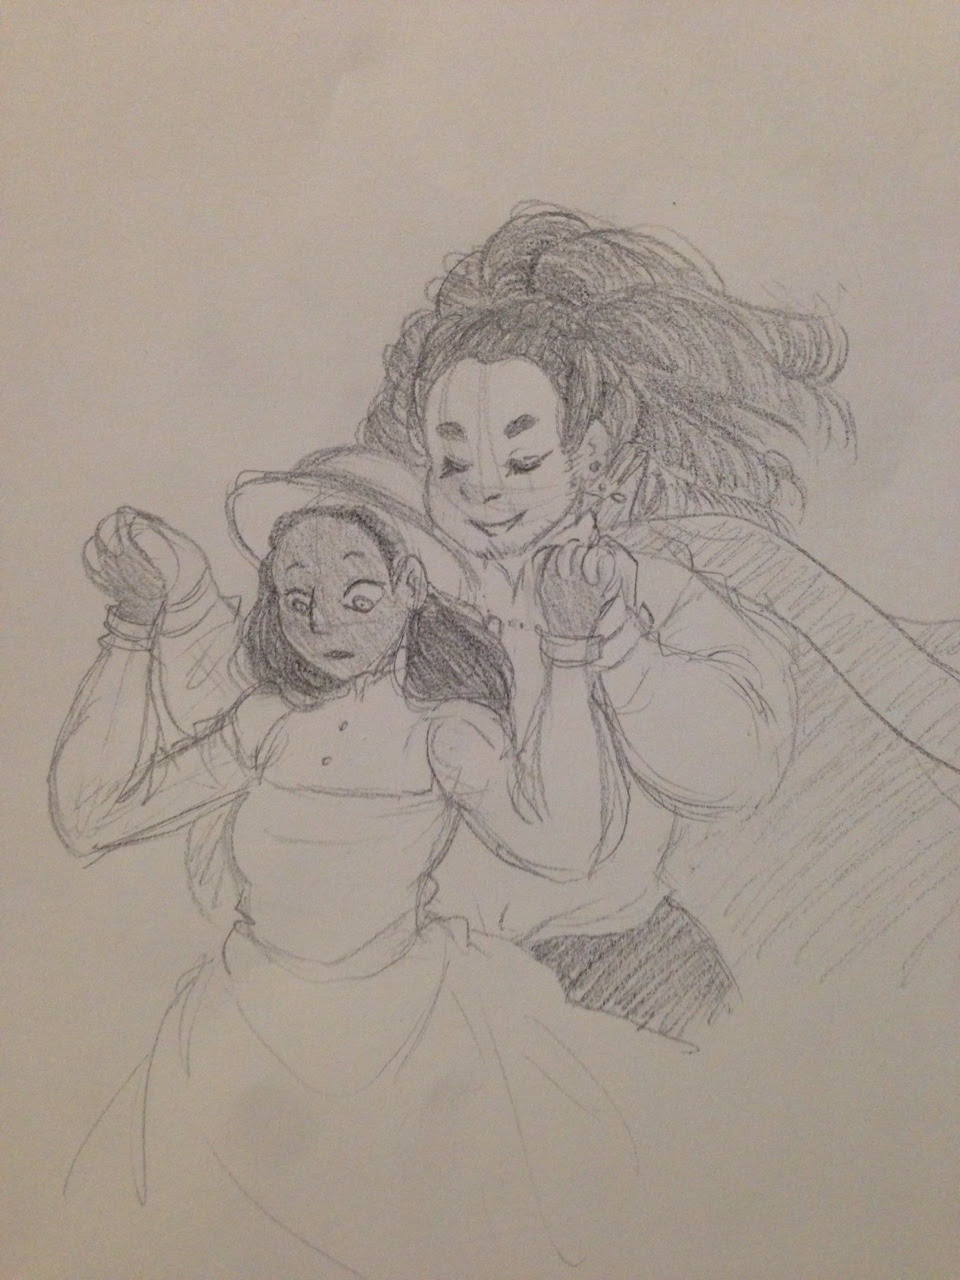 i was feeling sad, so i drew connie, then i started feeling scared and anxious, so i drew a crossover between my fav show and my fav ghibli movie